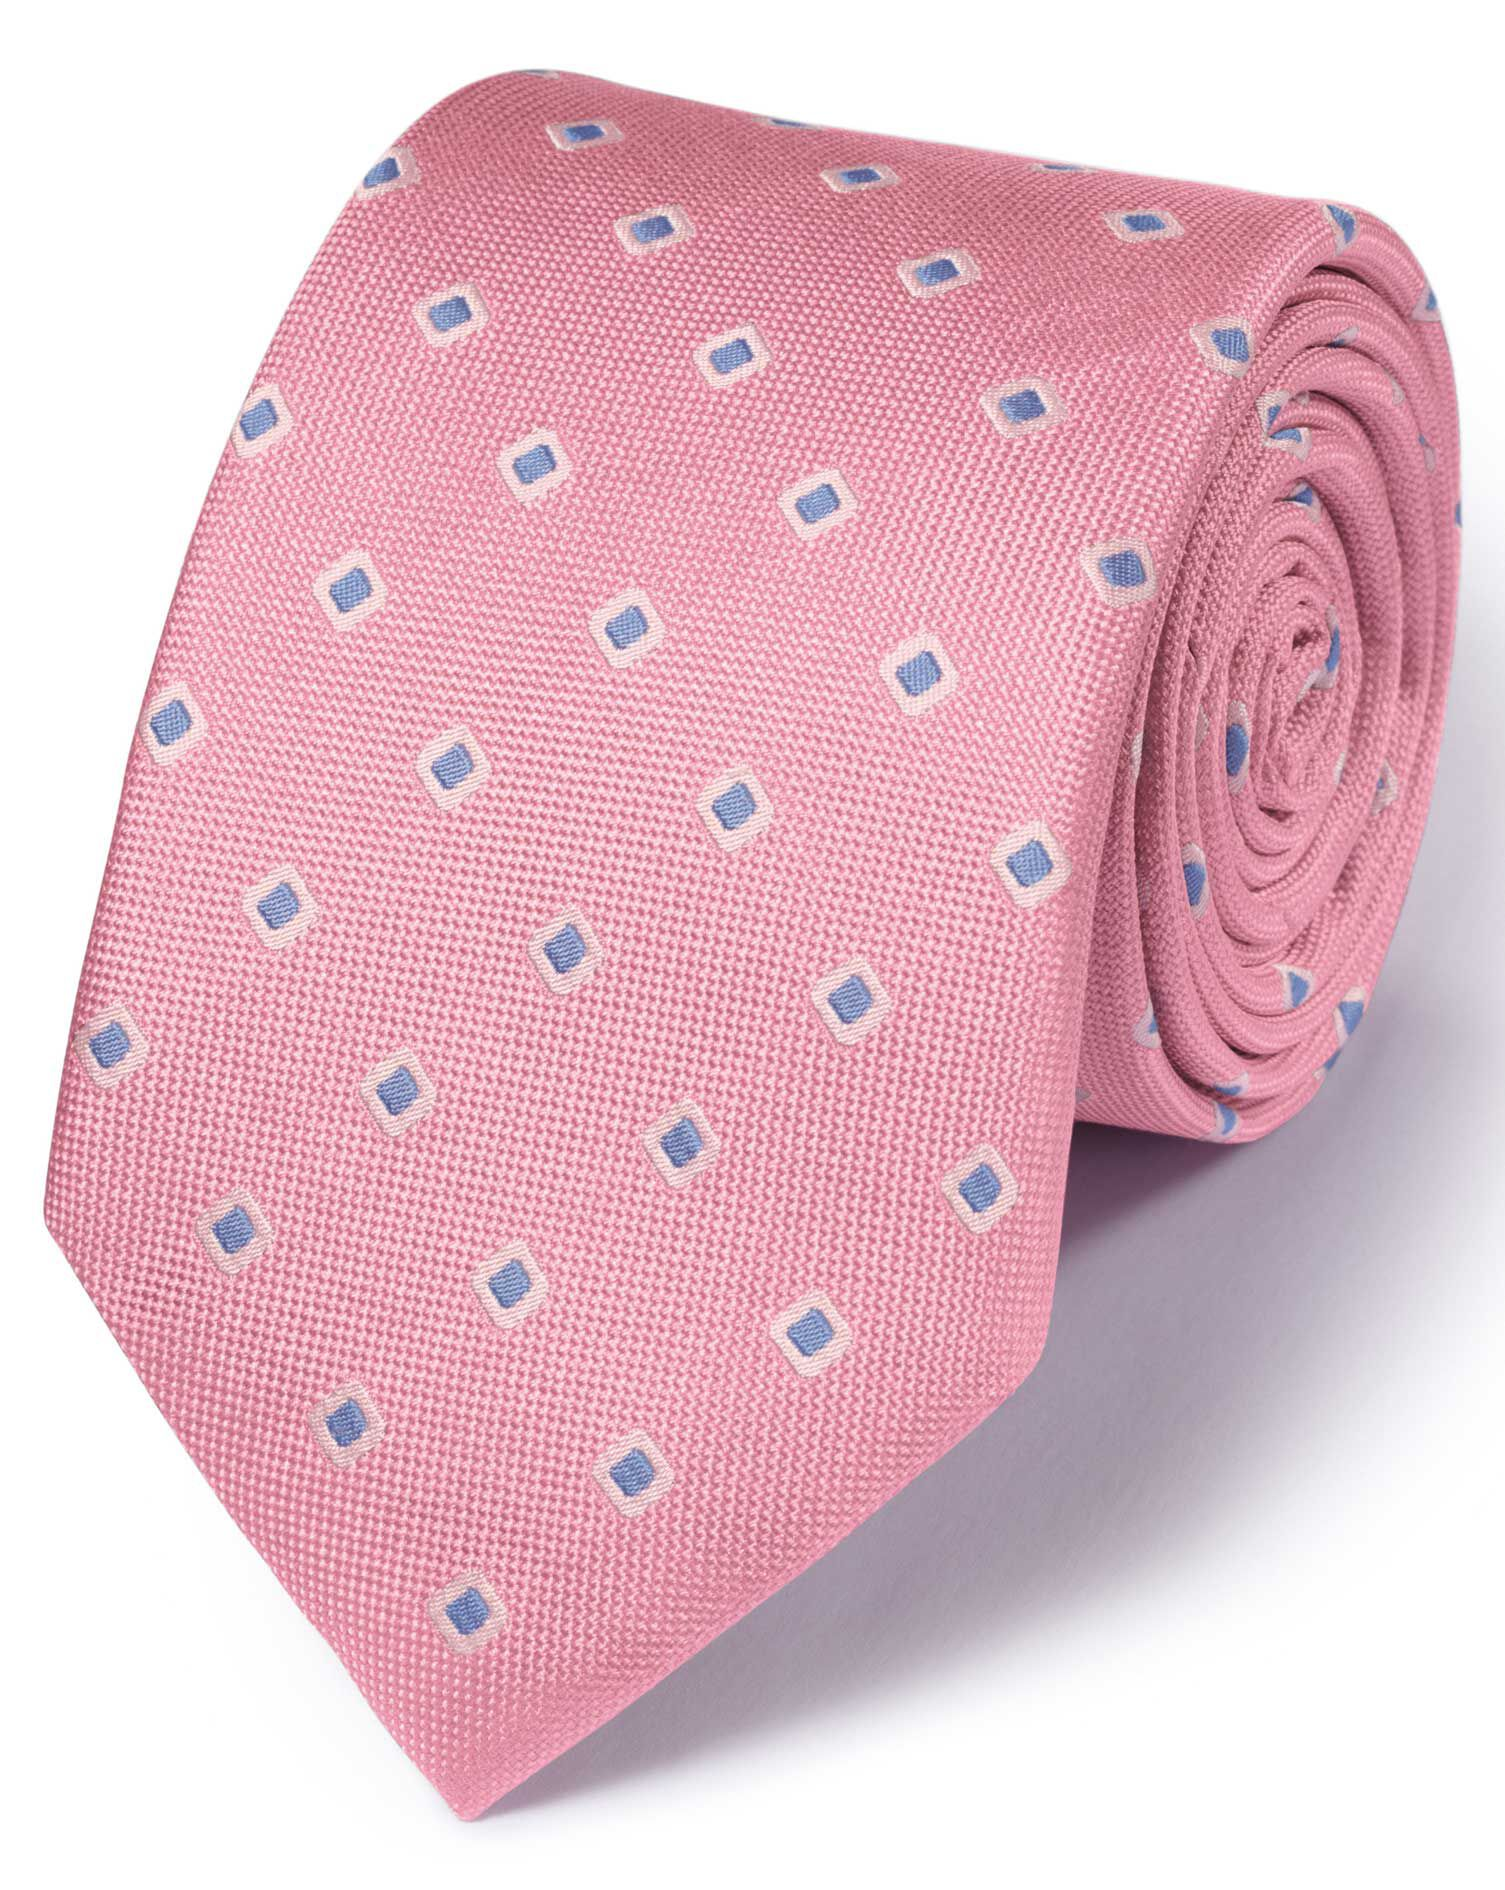 Light Pink Silk Classic Oxford Square Tie Size OSFA by Charles Tyrwhitt